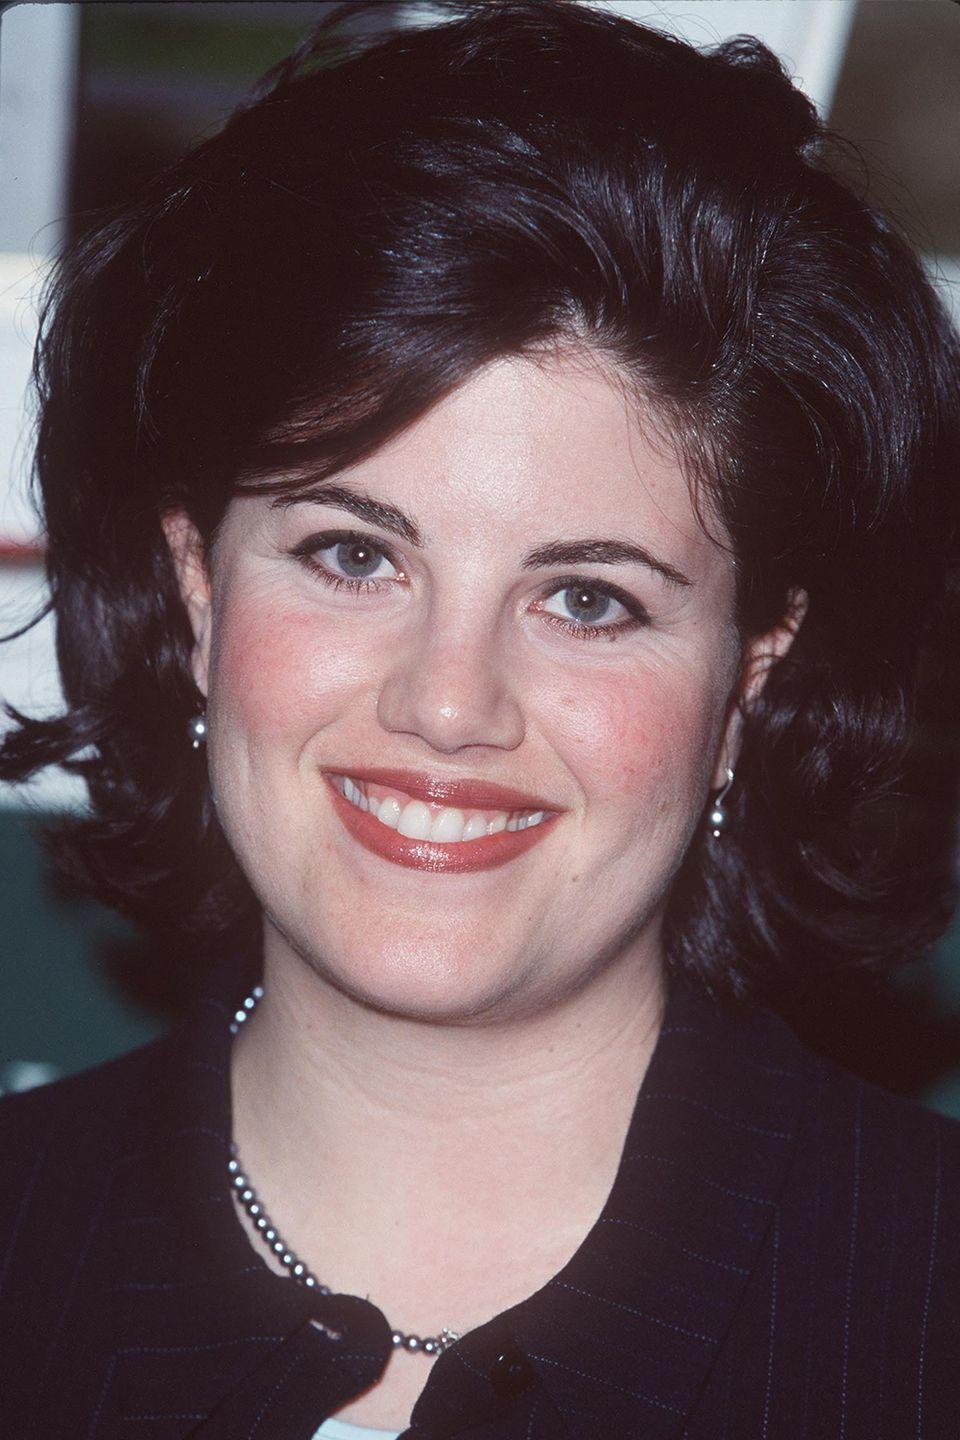 """<p>In 1999, Lewinsky gave a bombshell interview to Barbara Walters, <a href=""""https://www.youtube.com/watch?v=tsfLRtrr4WQ"""" rel=""""nofollow noopener"""" target=""""_blank"""" data-ylk=""""slk:describing the intimate relationship"""" class=""""link rapid-noclick-resp"""">describing the intimate relationship</a> she had during her affair with President Bill Clinton. """"I thought he was my sexual soulmate,"""" she said. """"I think when you allow yourself to open up that way, things happen."""" She goes on for two hours, discussing her flirtations with the president and how the two ended up in bed together.</p>"""